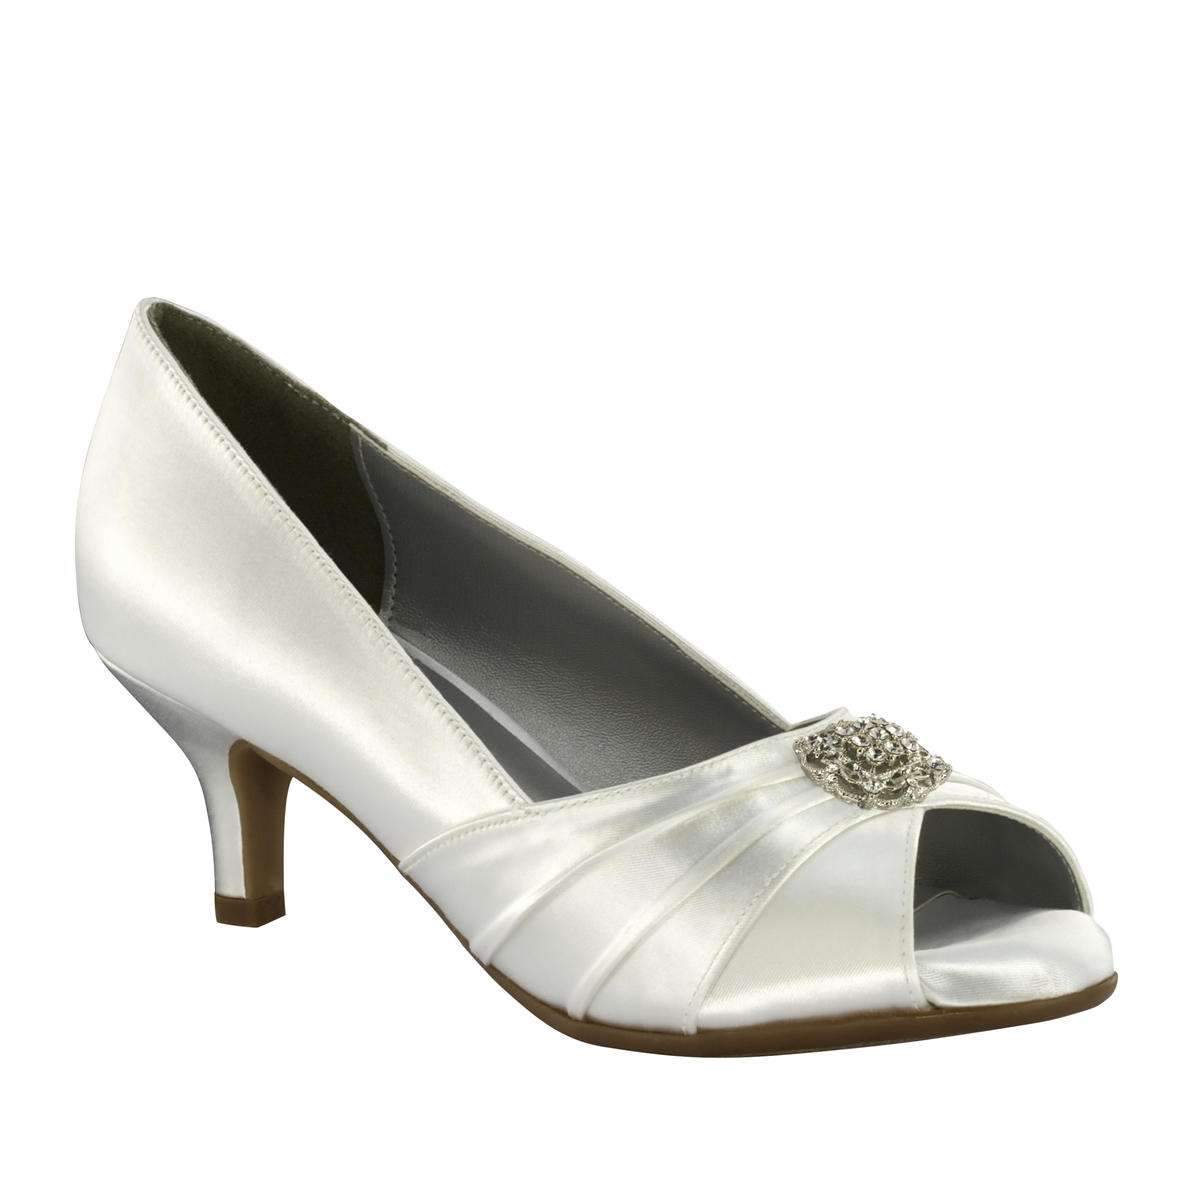 Pleated Metallic Low-Heel Open Toe